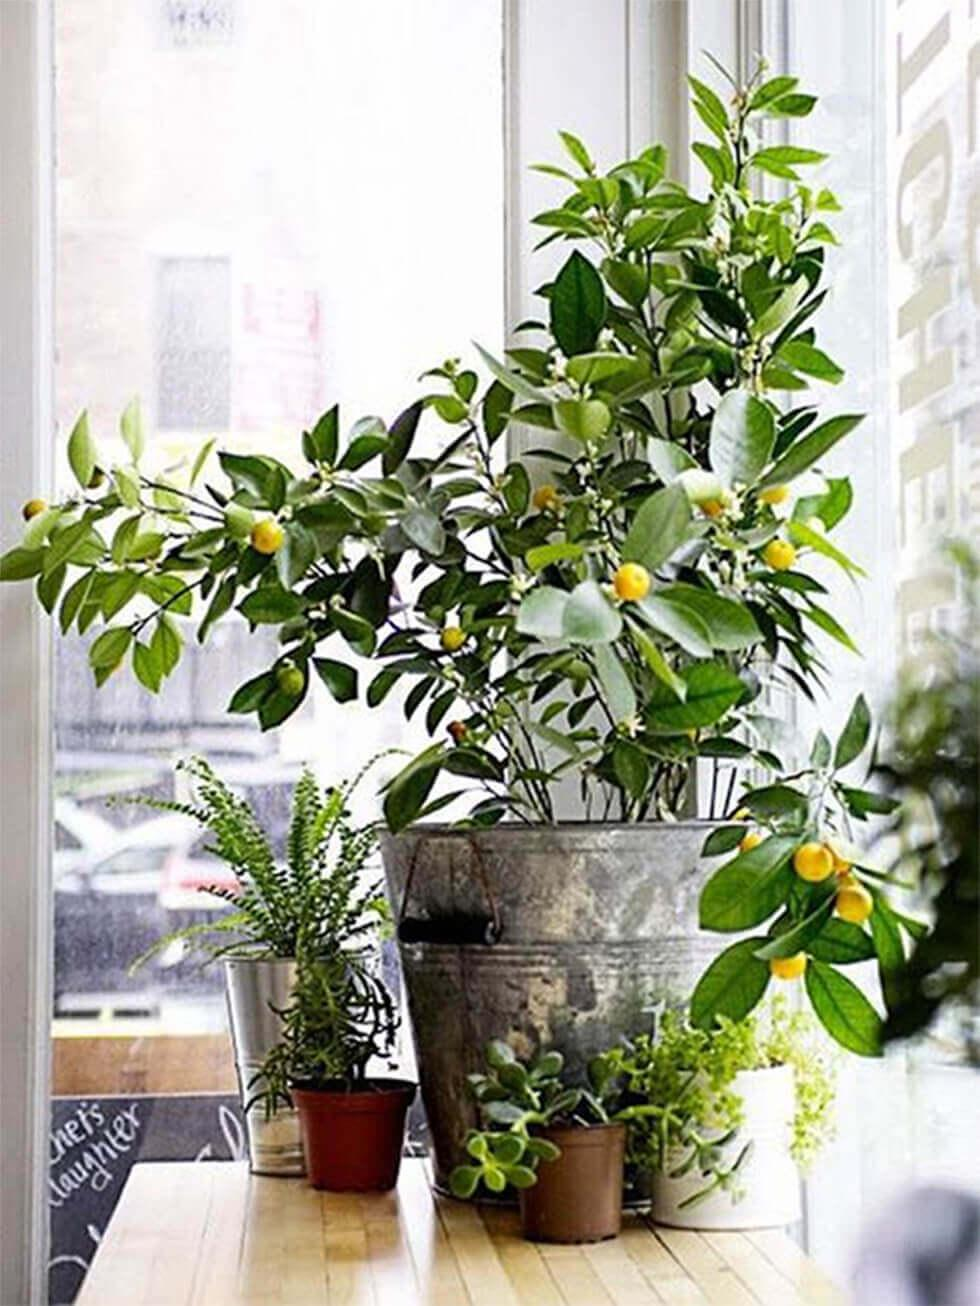 Citrus fruit tree grown indoors.